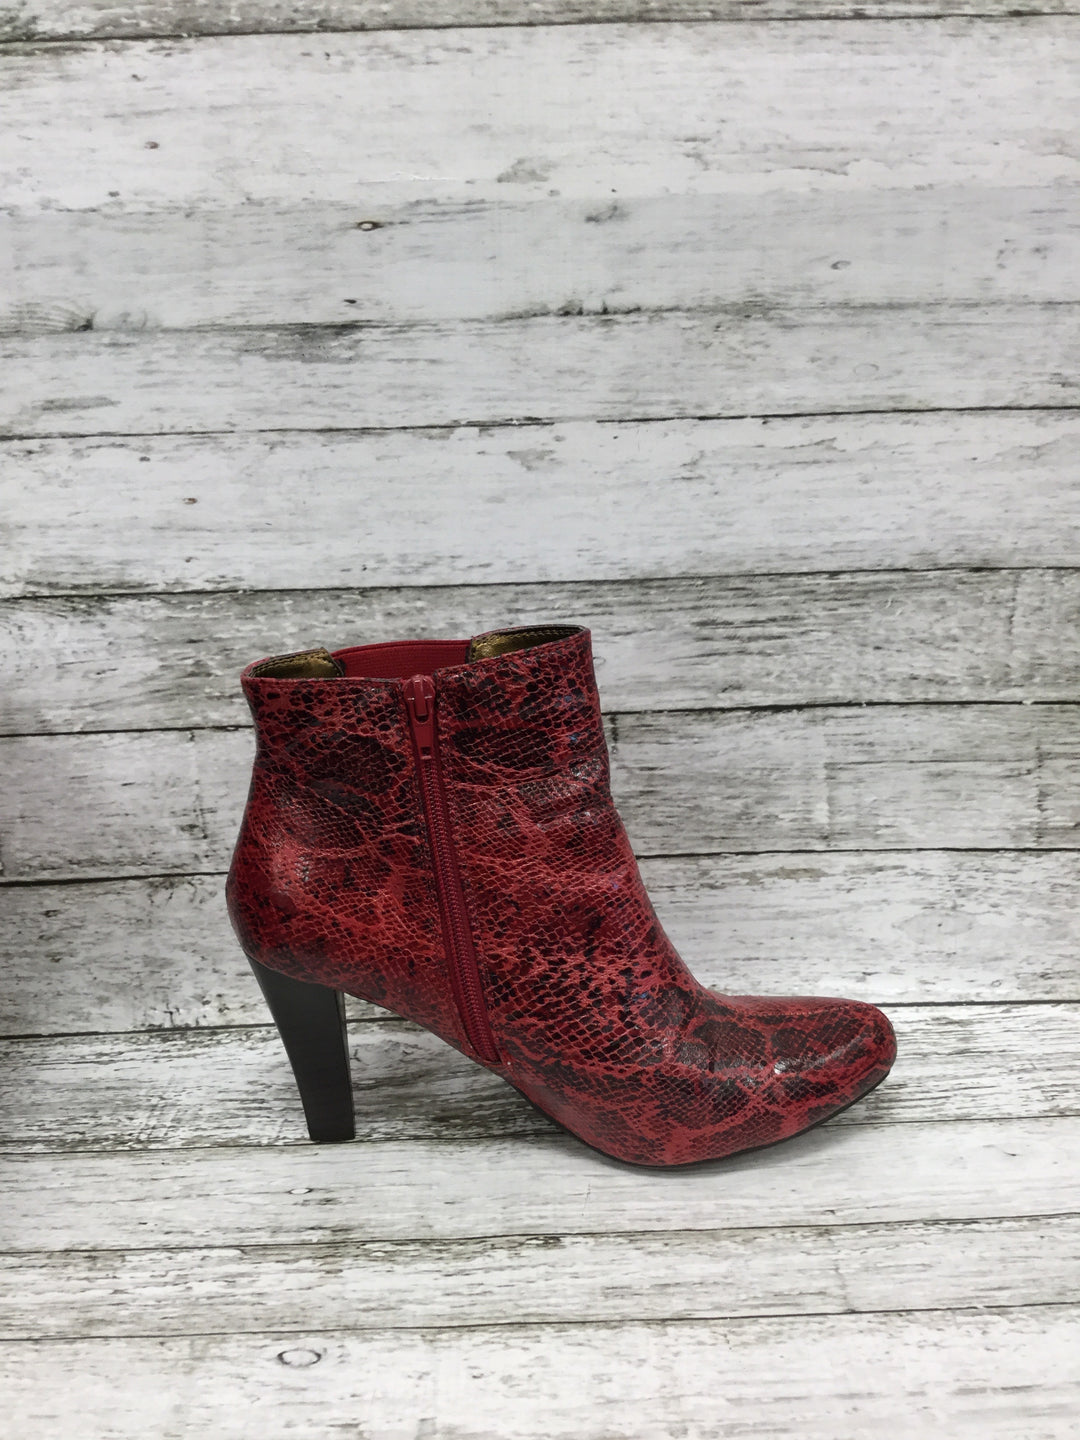 Photo #2 - BRAND: RIALTO , STYLE: BOOTS ANKLE , COLOR: RED , SIZE: 8.5 , SKU: 127-4876-8622, , RED SNAKESKIN HEELED BOOTIES!